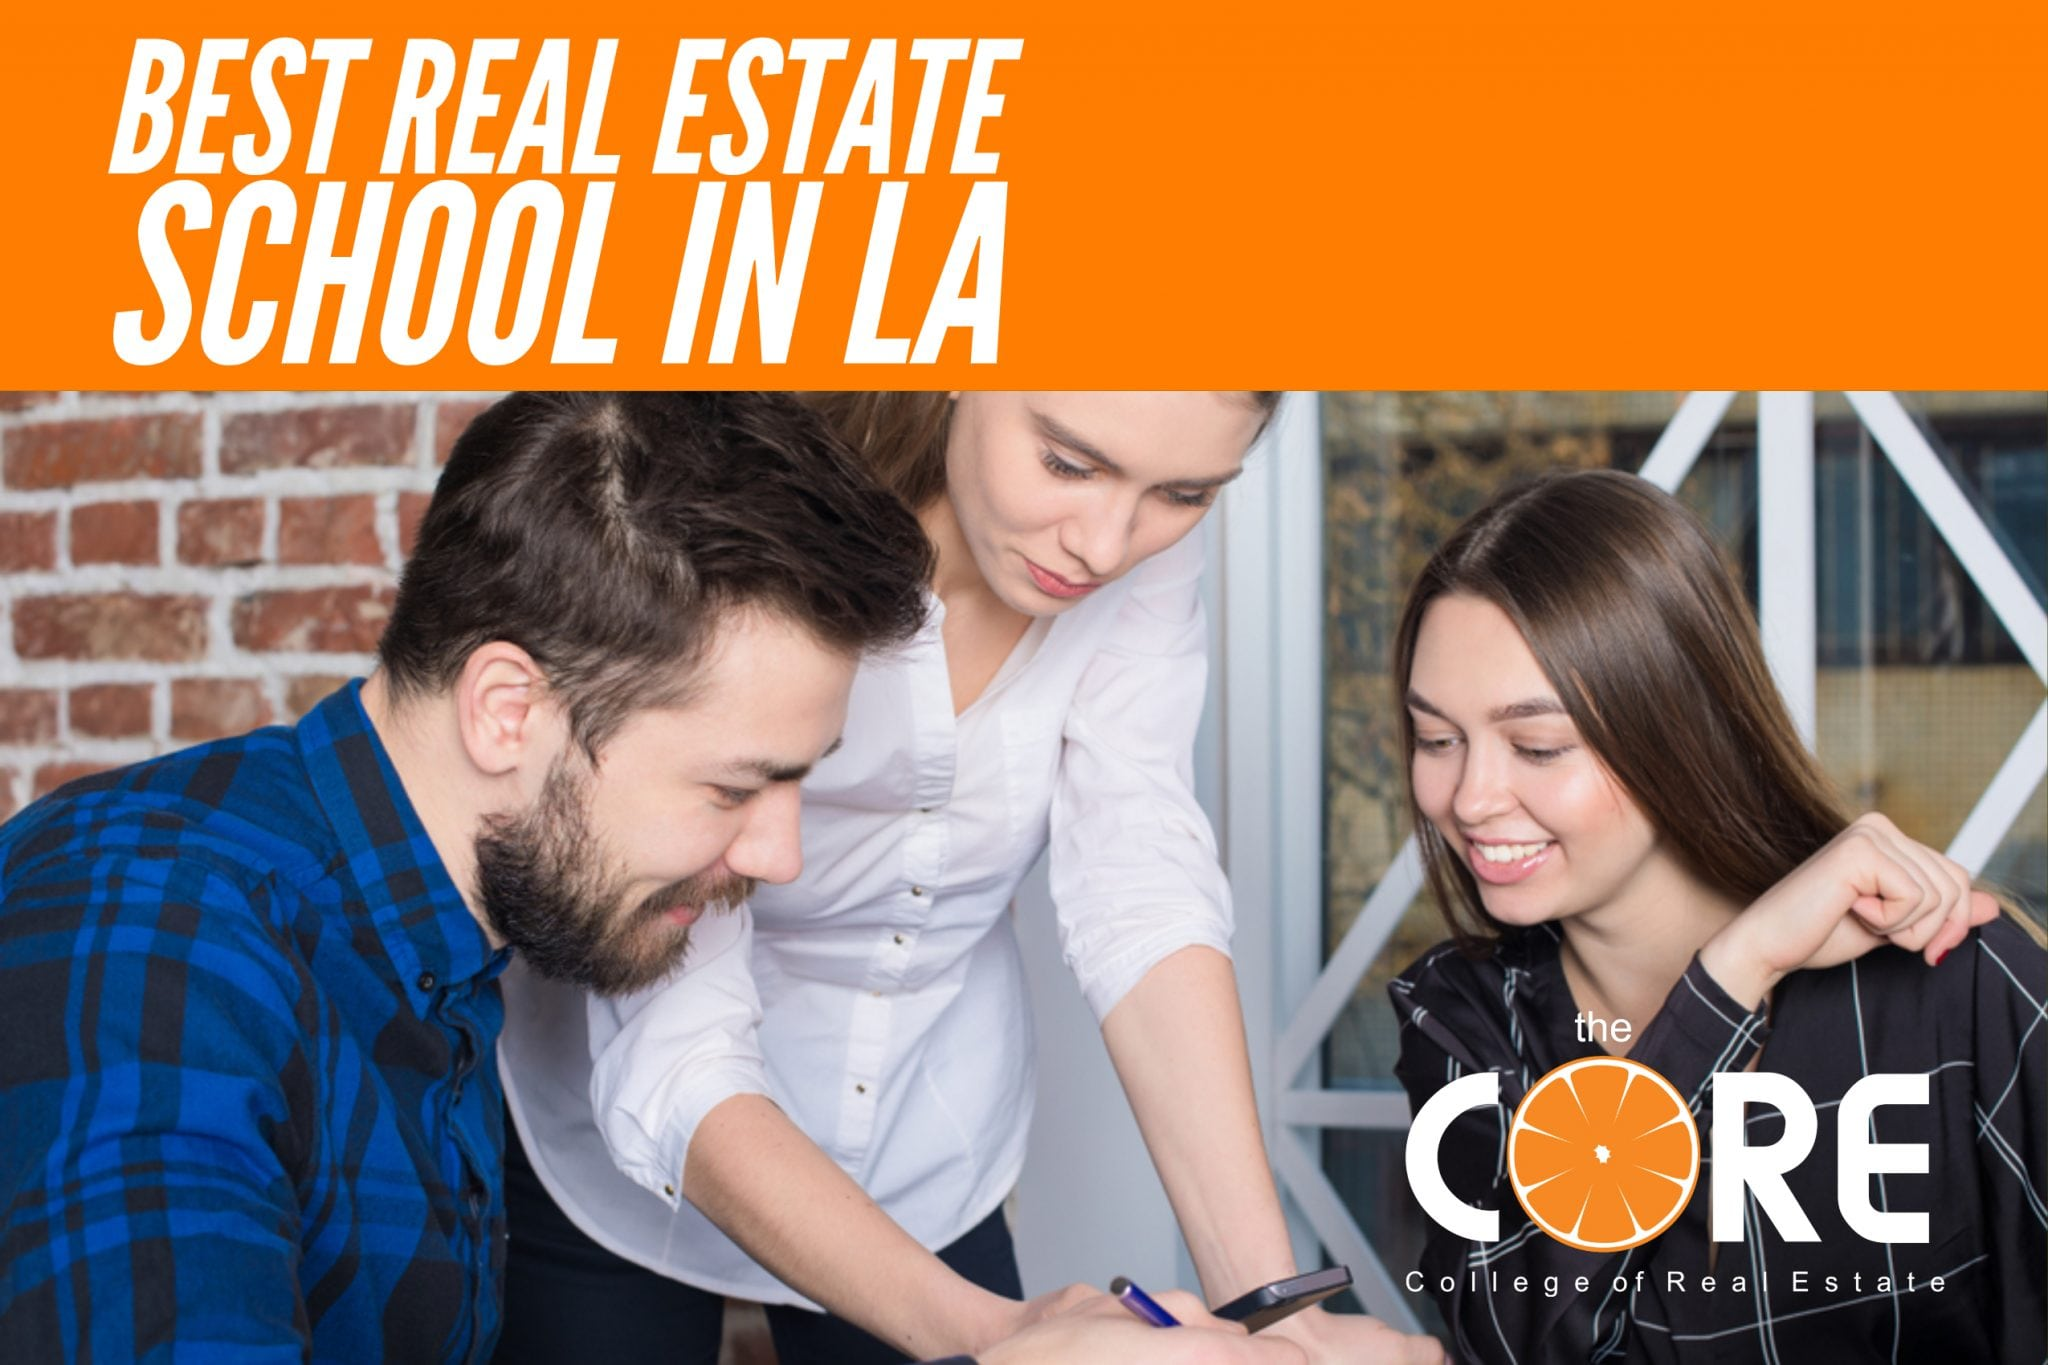 Get-Your-Real-Estate-License-Los-Angeles-Real-Estate-School-College-of-Real-Estate-theCORE-south pasadena real estate agent south pasadena real estate office south pasadena real estate company best real estate company to work for los angeles which real estate company has the best training for new agents best south pasadena realtor pasadena homes for sale south pasadena real estate market